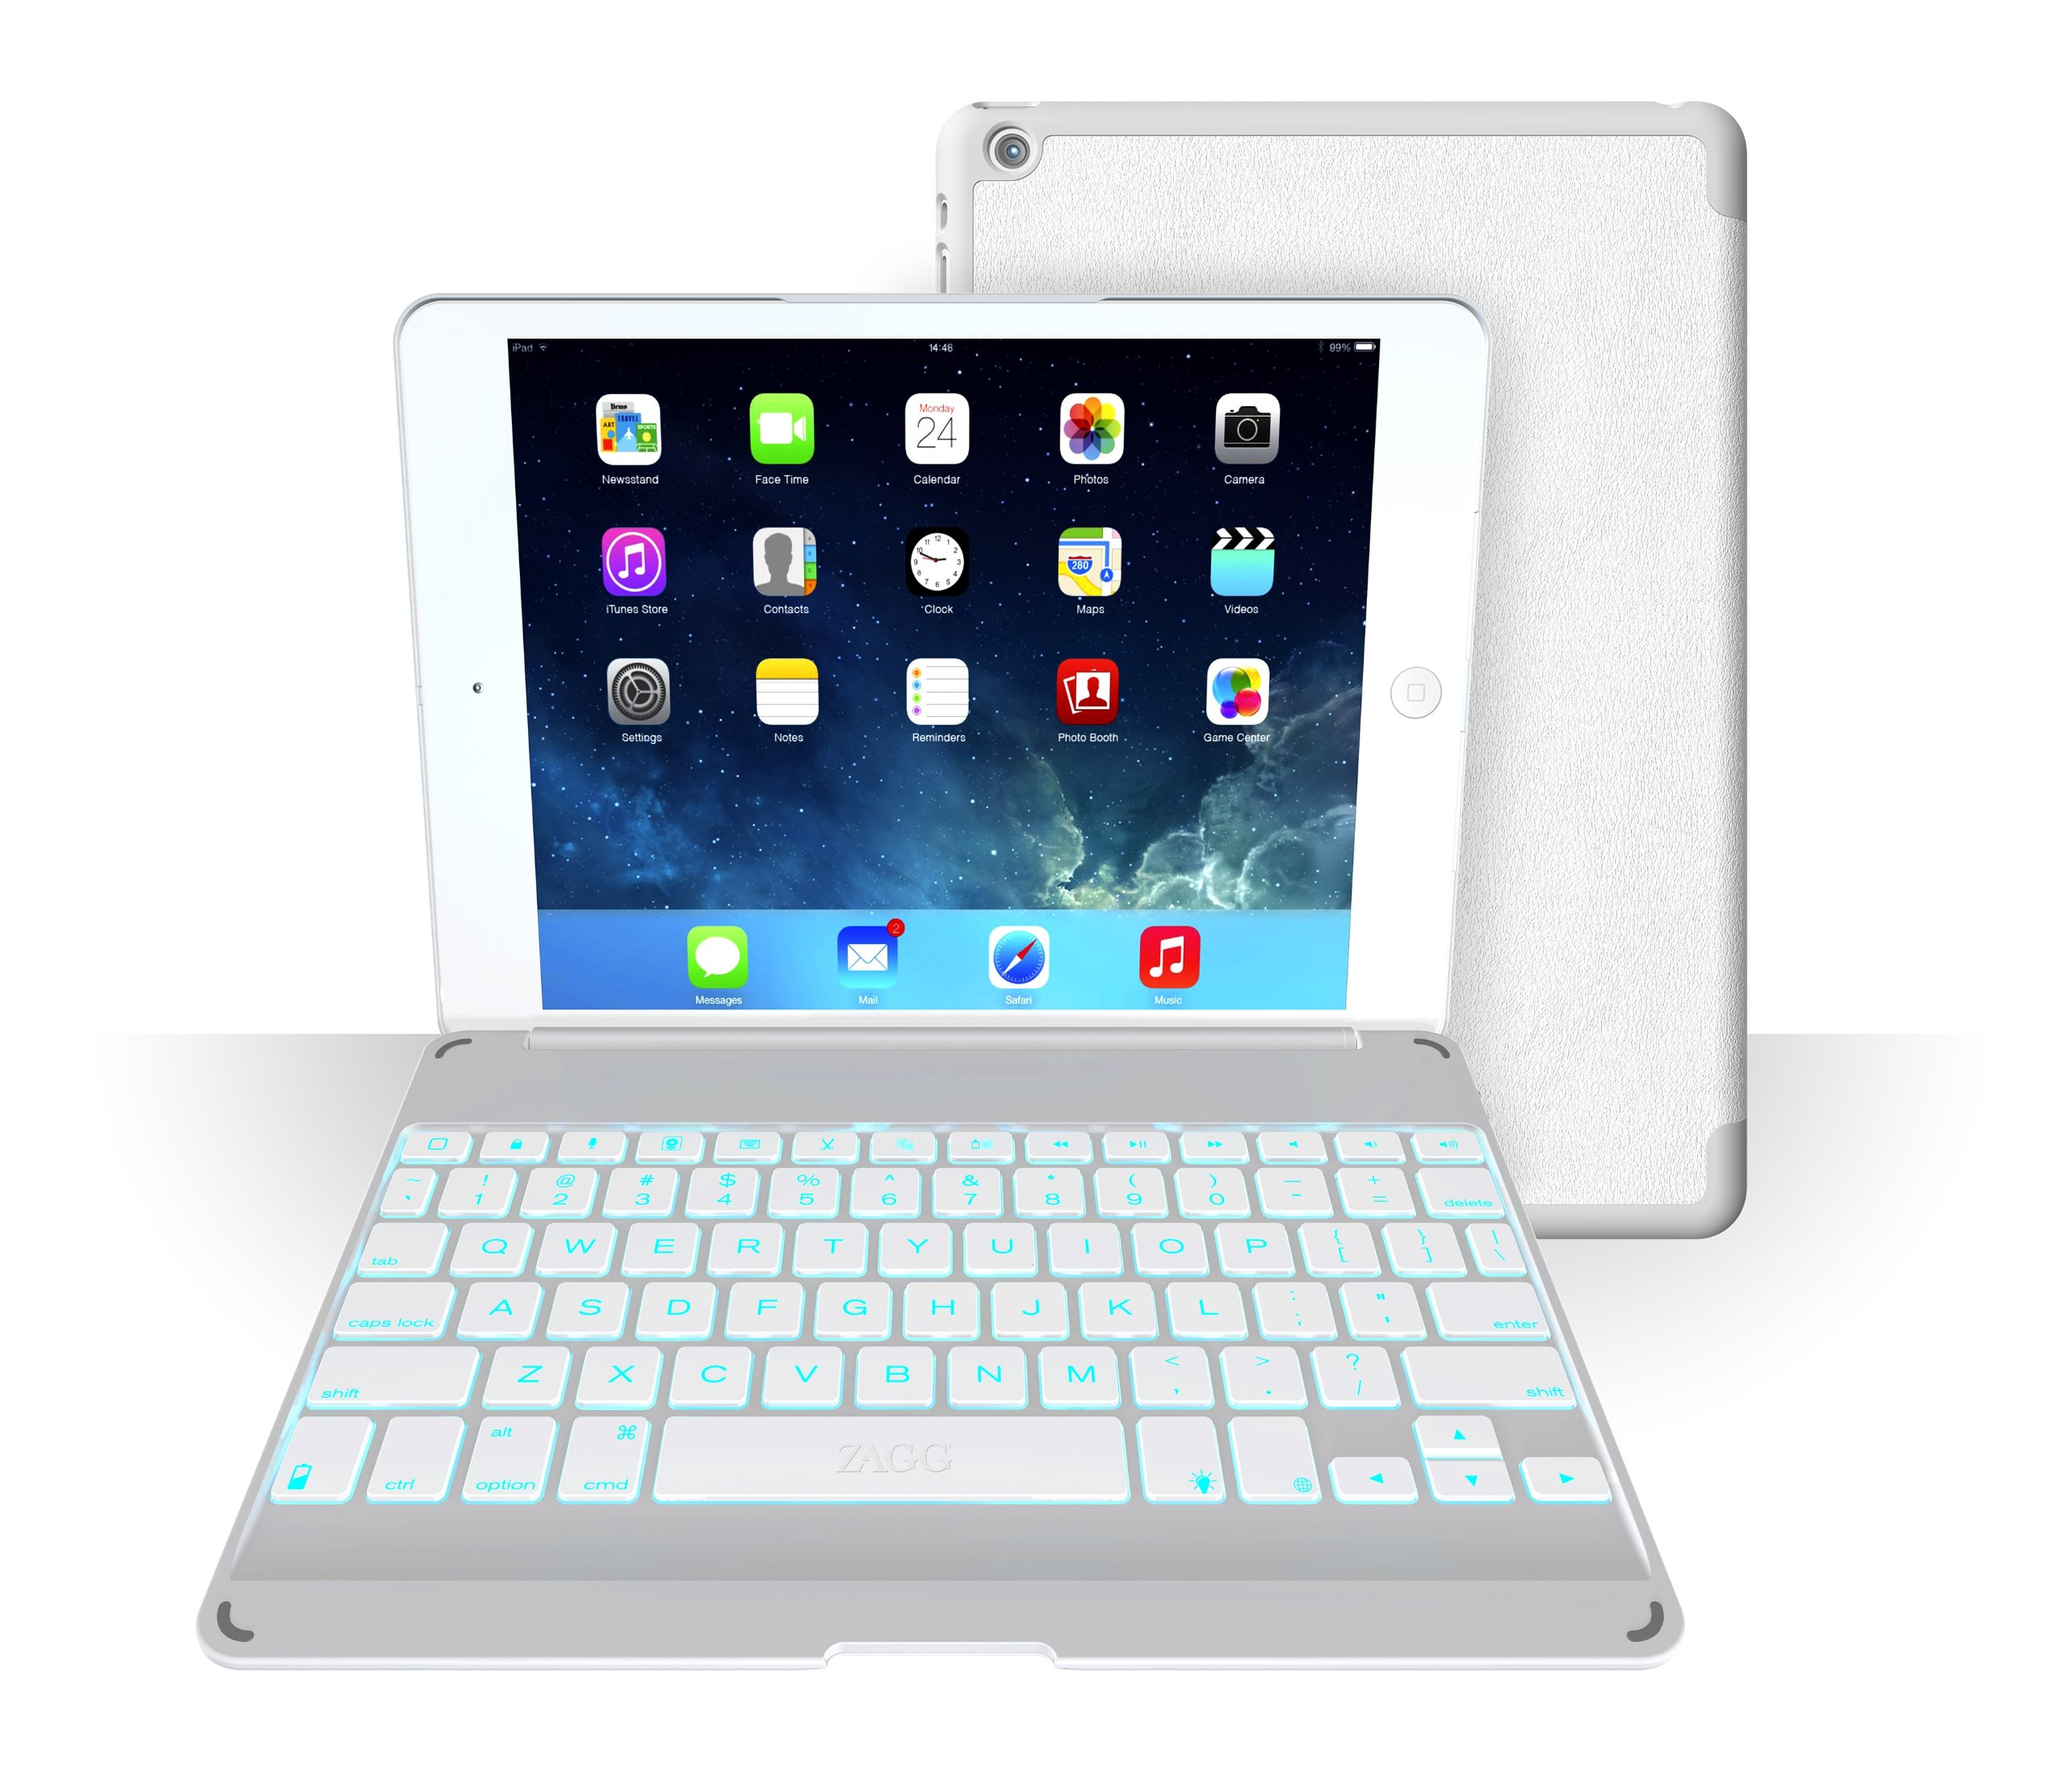 ZAGG Folio Case with Backlit Bluetooth Keyboard  for iPad Air - White by ZAGG (Image #1)